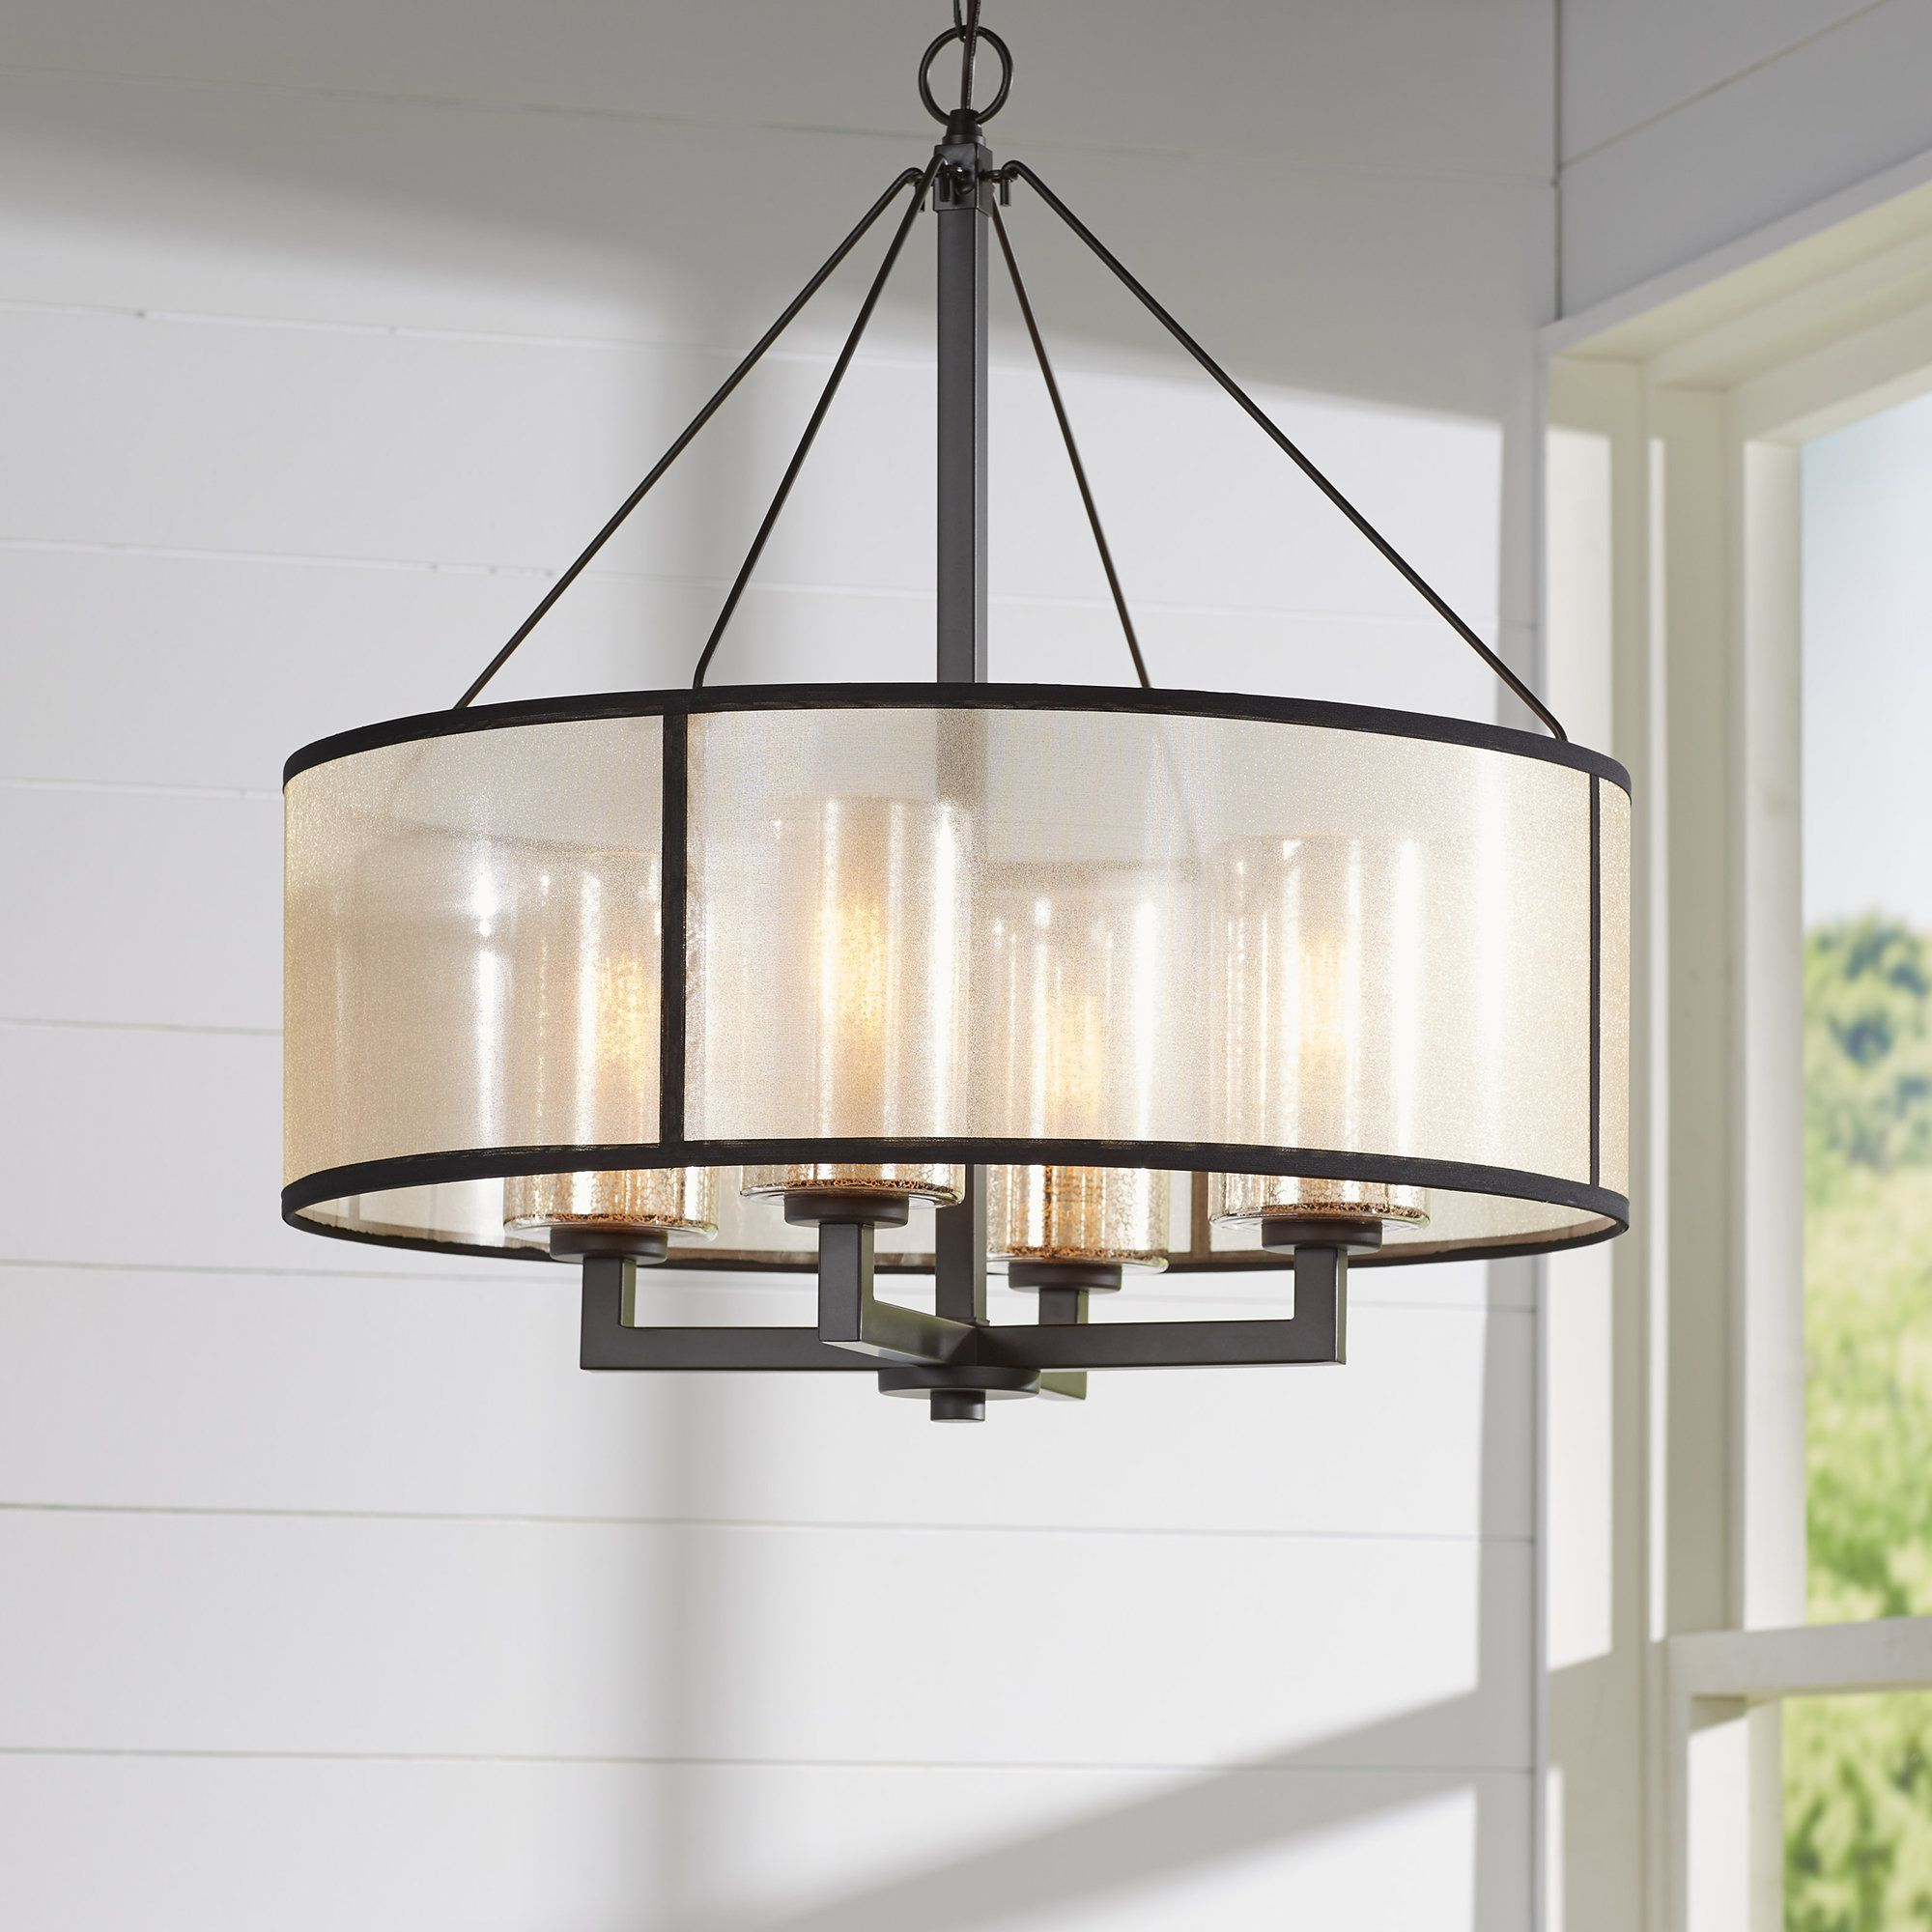 Popular Harlan 5 Light Drum Chandeliers Inside Pinseventwin Home Comfort On Popular Ideas In (View 12 of 20)